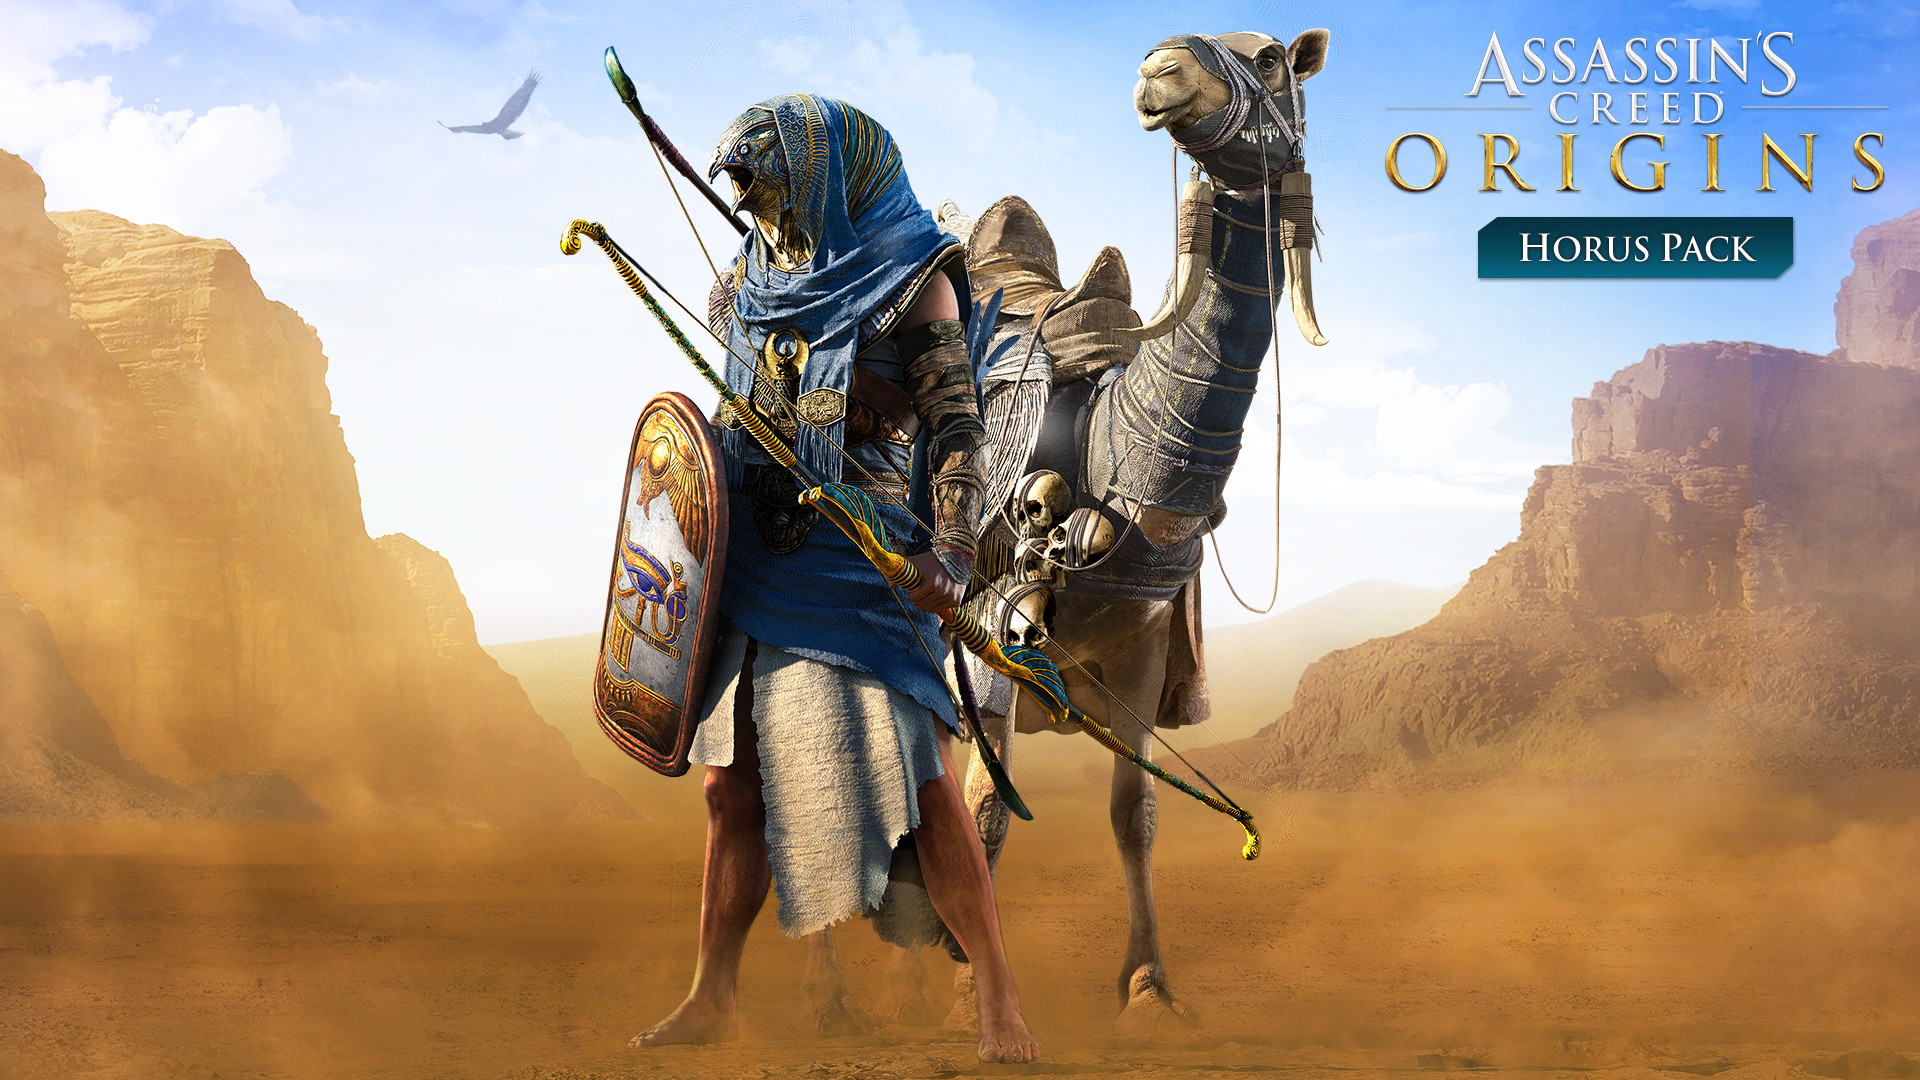 Assassin's Creed® Origins - Horus Pack on Steam